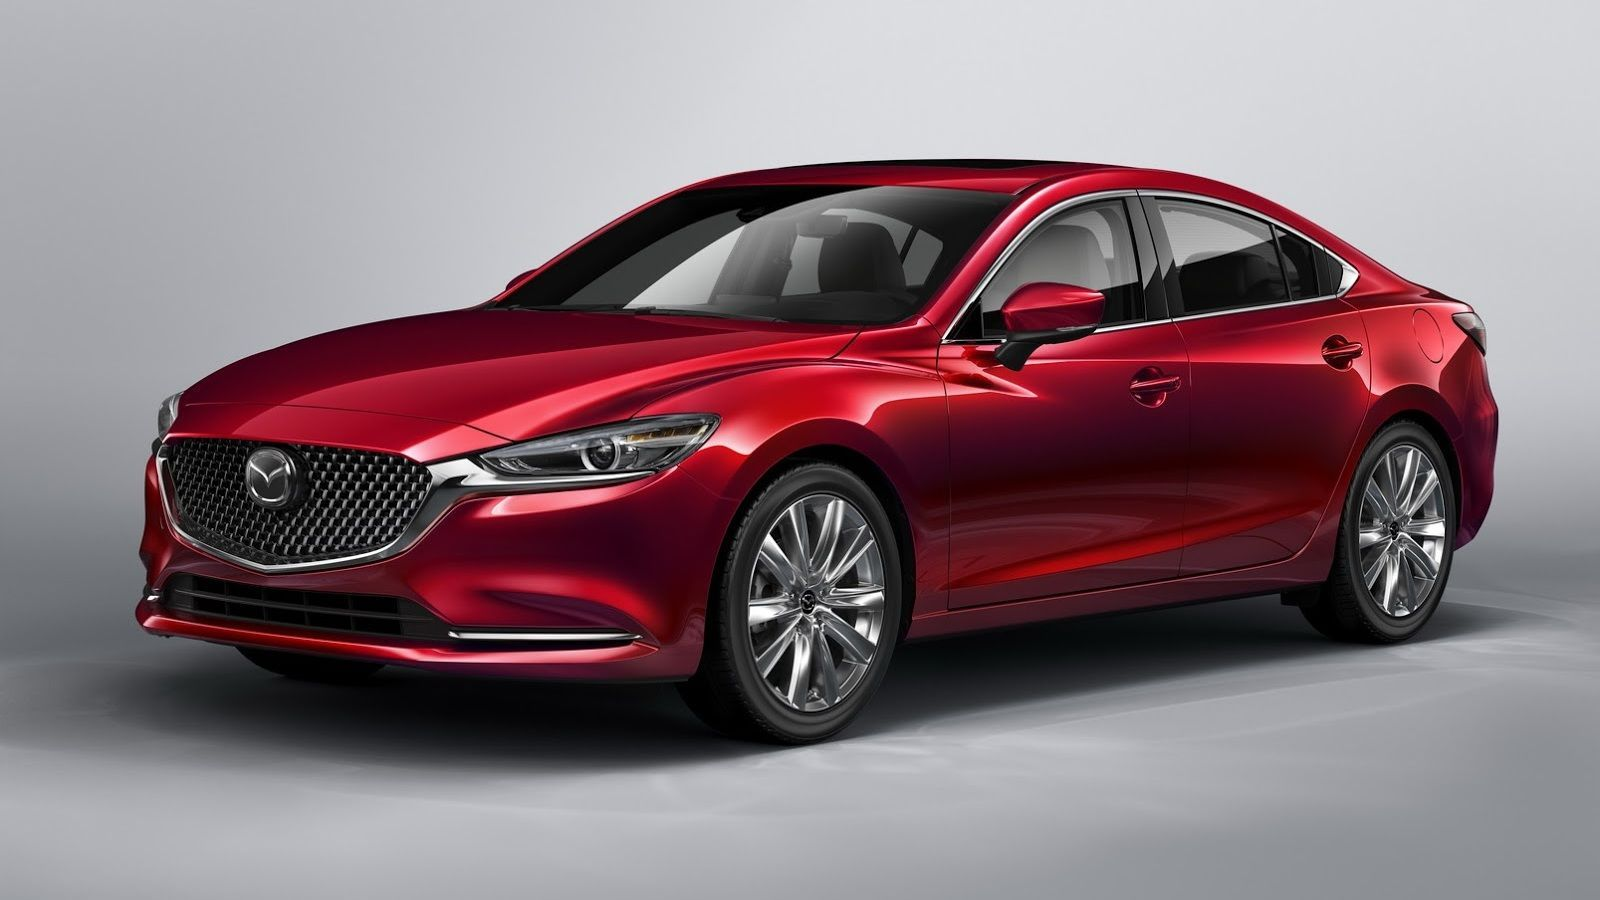 Behold The Turbocharged 2018 Mazda6 With A Much Nicer Interior And 310 Lb Ft Of Torque V 2020 G Mazda Avtomobil Mazda6